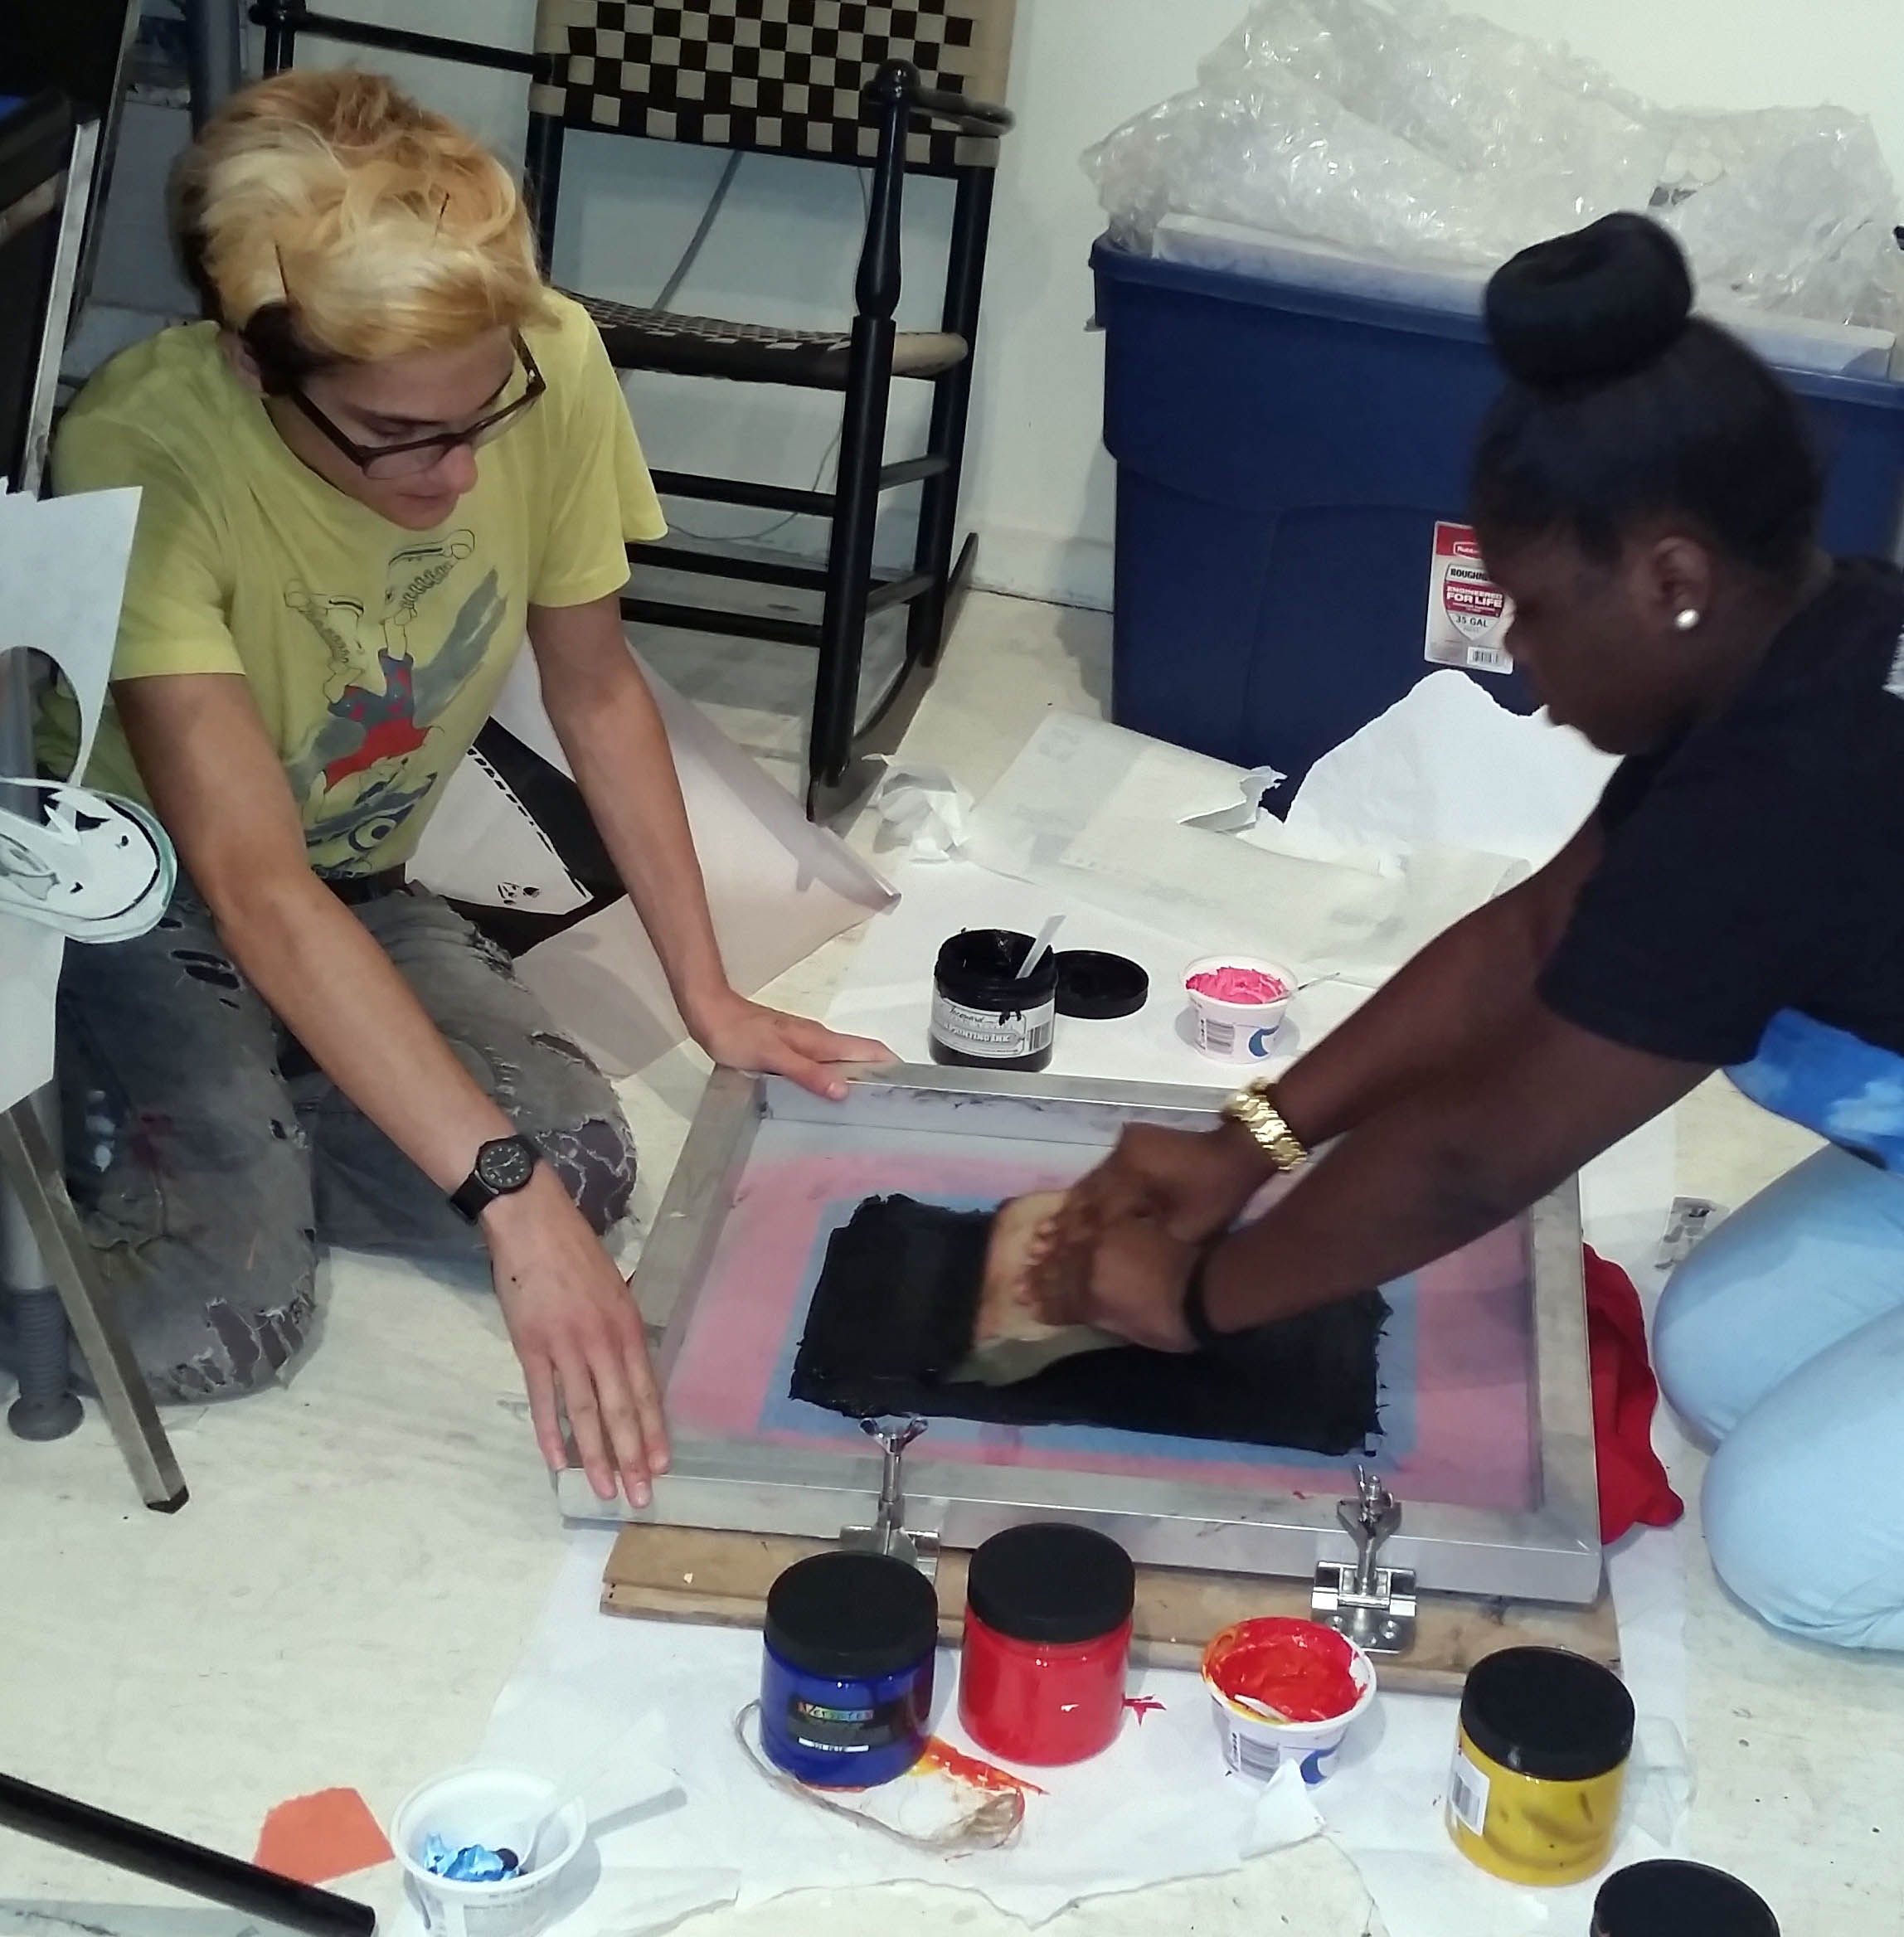 RHAP visual art tutor teaching screen printing to visual art student.